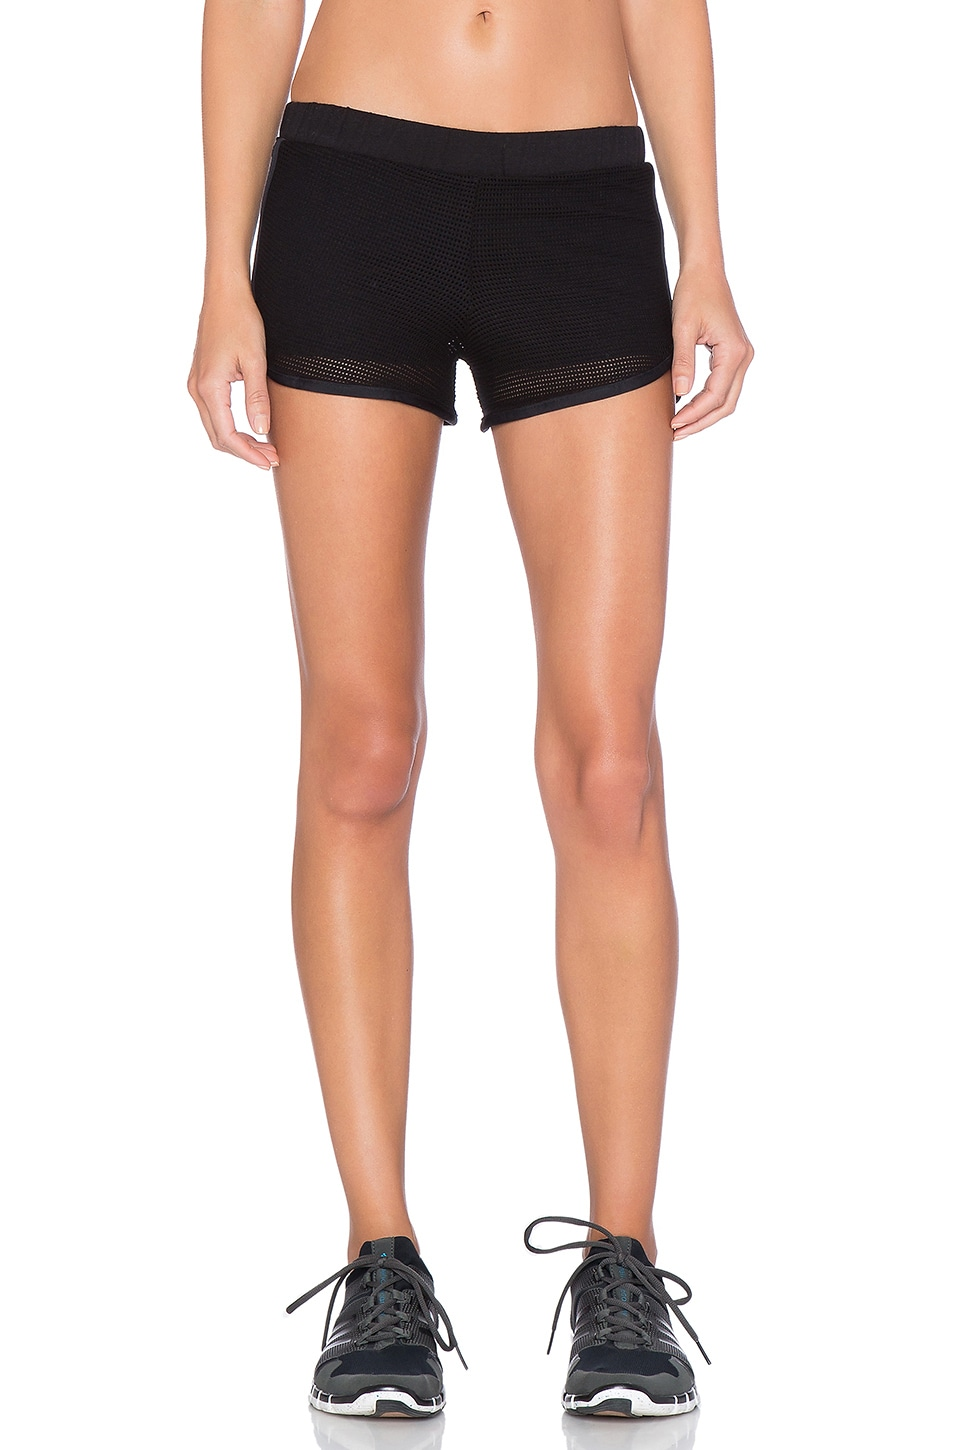 Blue Life Mesh Running Short in Black